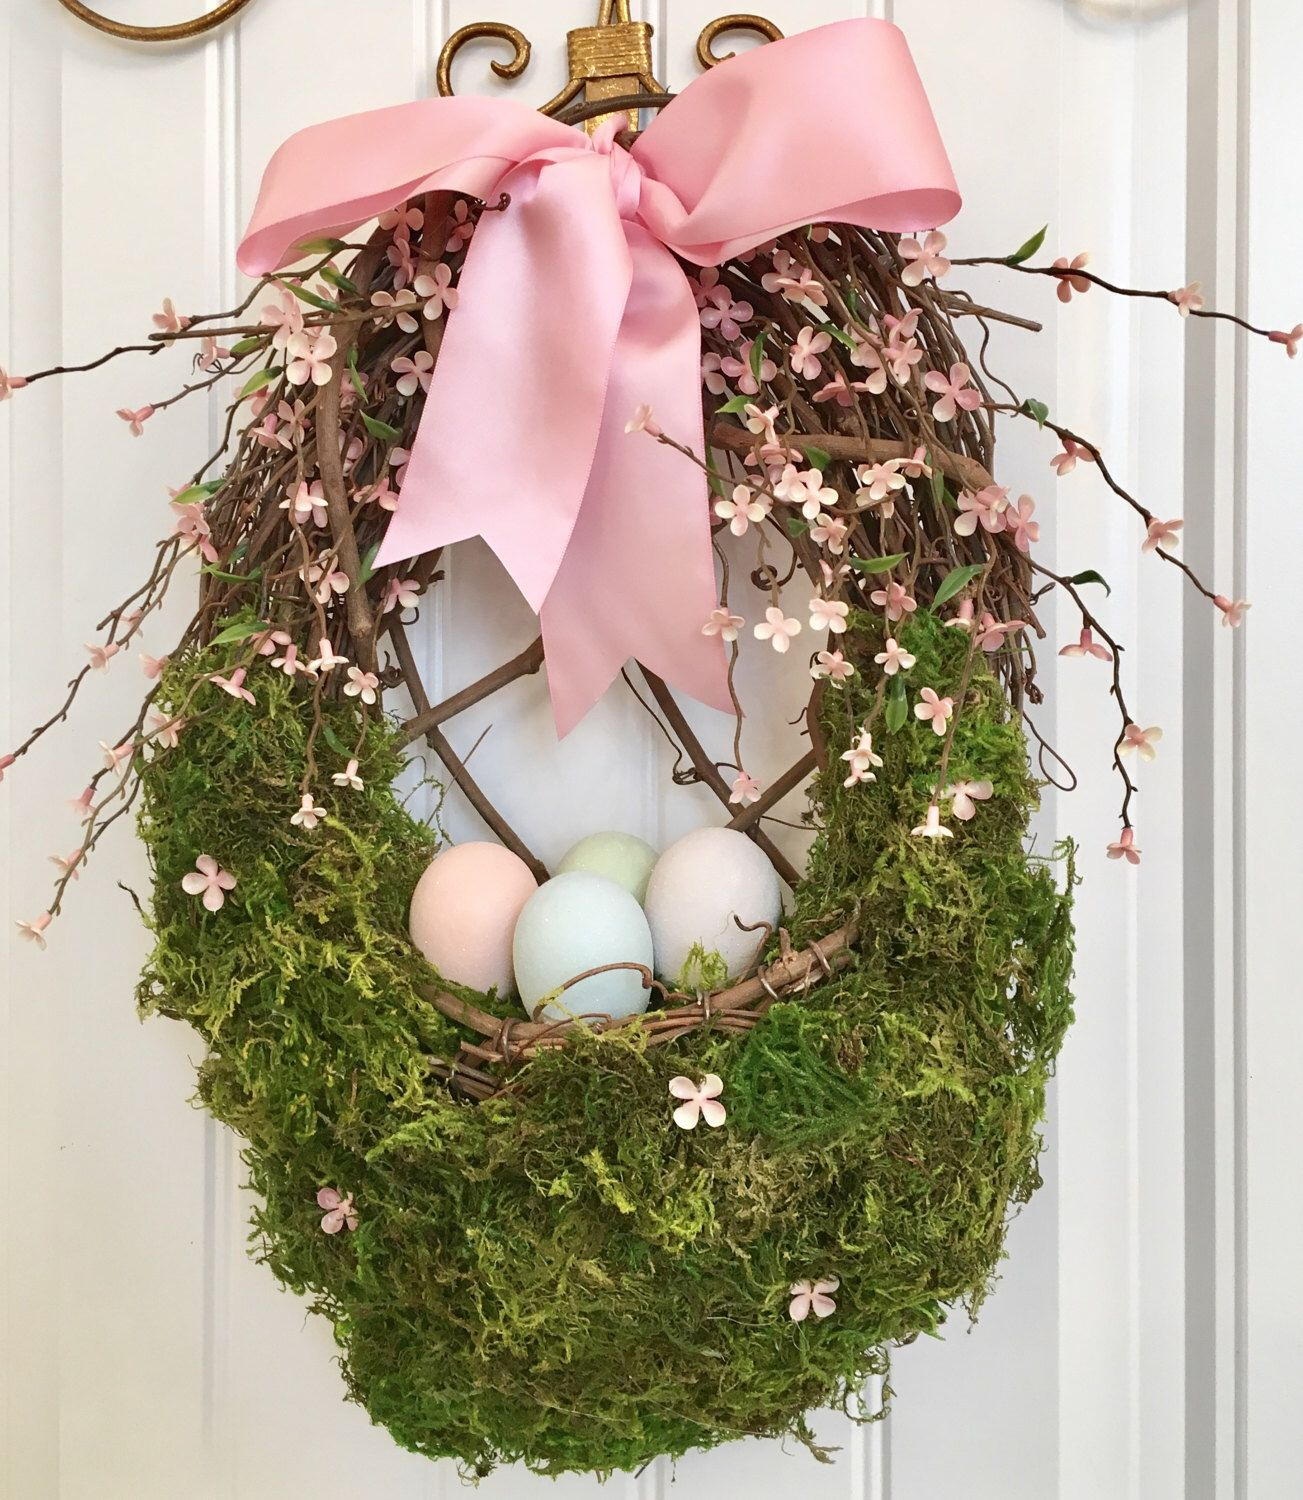 Easter Egg Door Basket, Easter Egg Wreath, Spring Wreath, Pink Easter Wreath, Pastel Easter Basket, Easter Decoration, Front Door Wreath by CelebrateAndDecorate on Etsy https://www.etsy.com/listing/183828749/easter-egg-door-basket-easter-egg-wreath